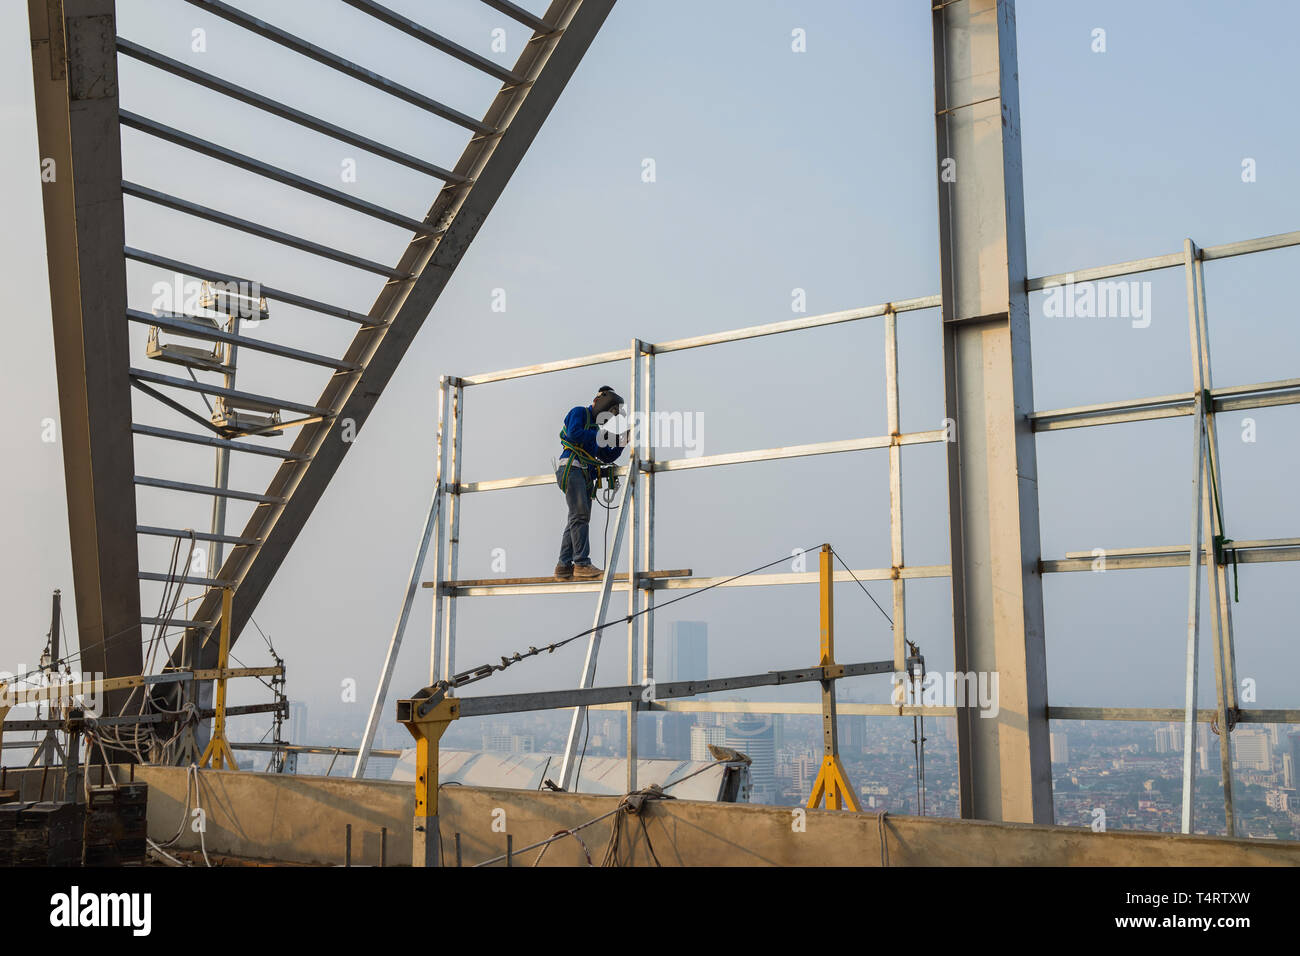 Asian worker weld on top of high building without scaffolding, low safety working condition - Stock Image